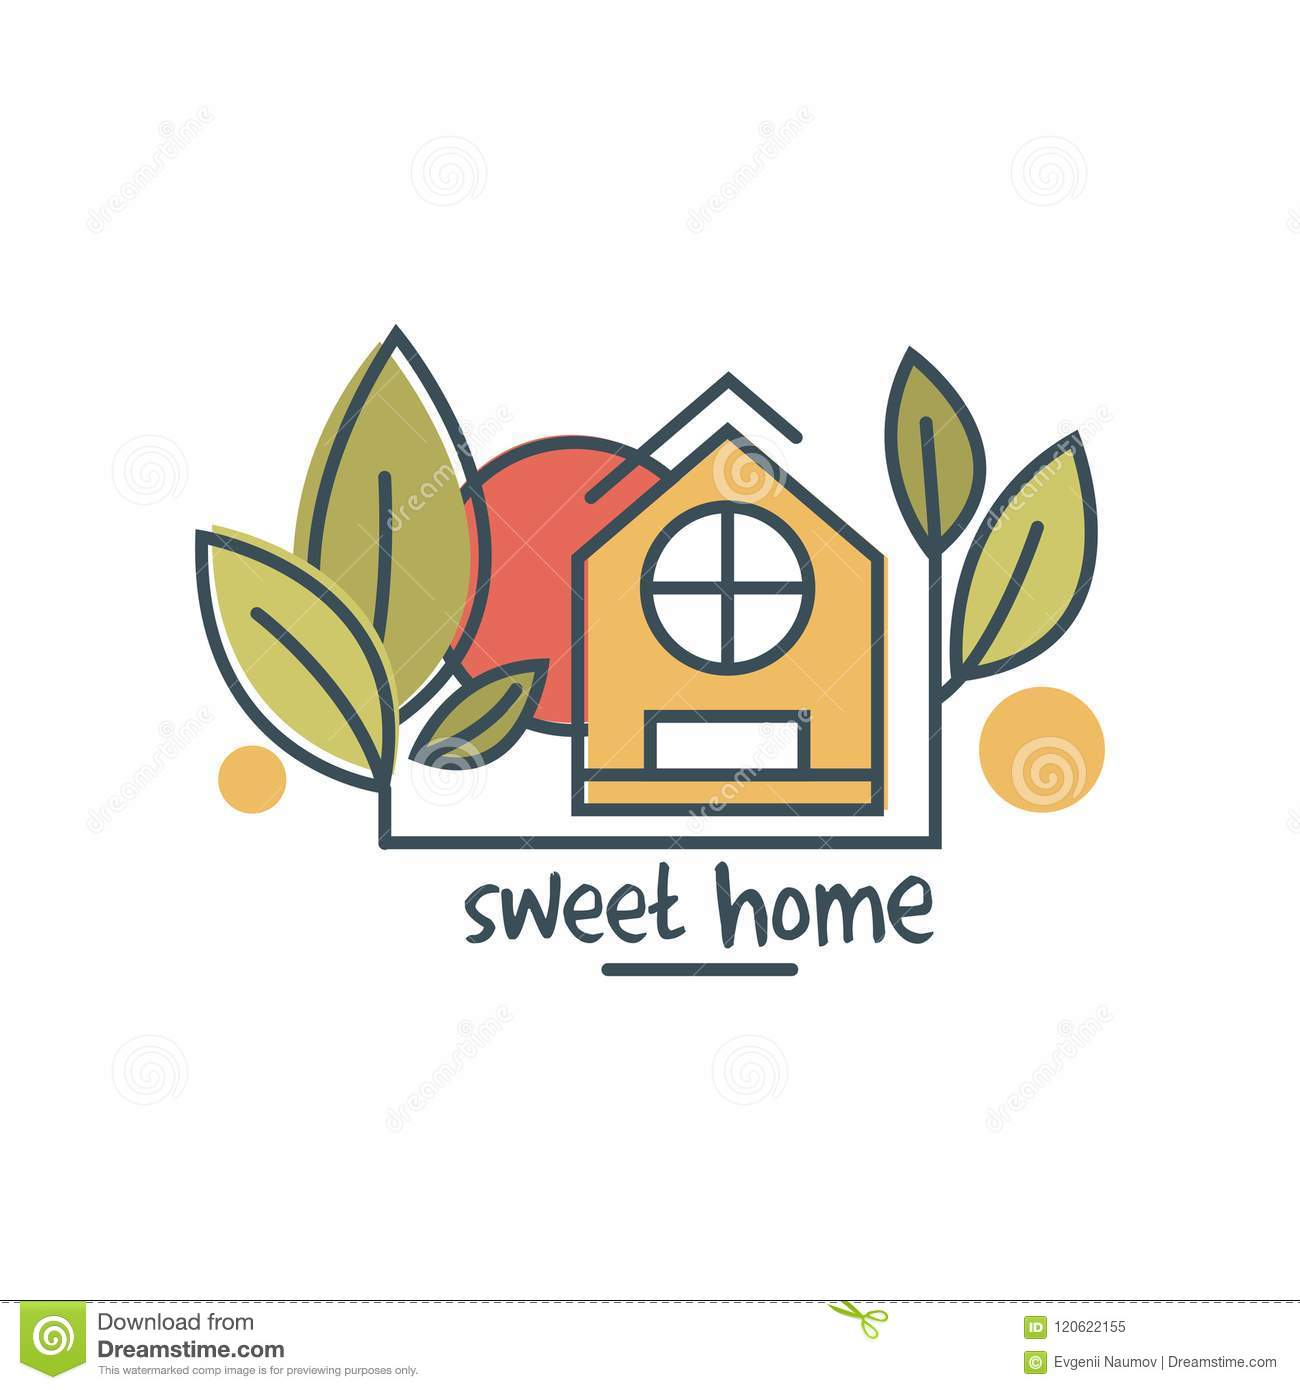 Awesome Sweet Home Logo Template Design, Eco Friendly House Concept Vector  Illustration On A White Background